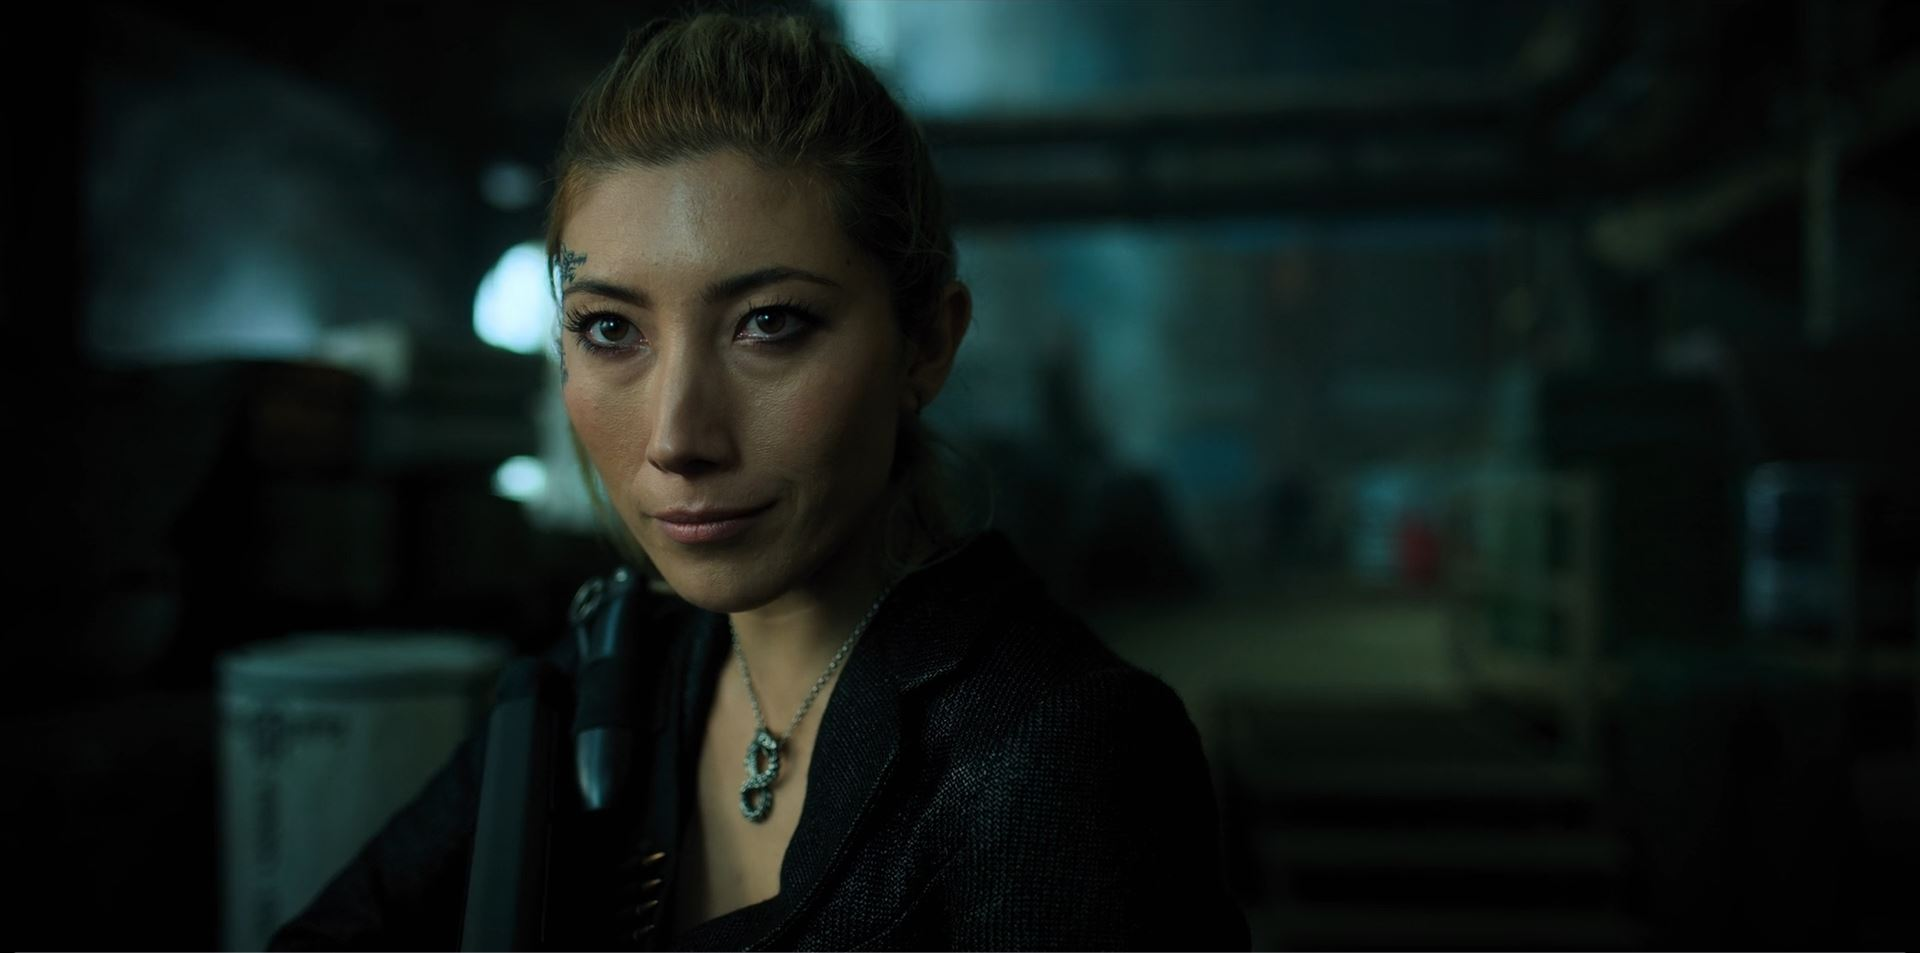 Altered Carbon - Dichen Lachman as Reileen Kawahara